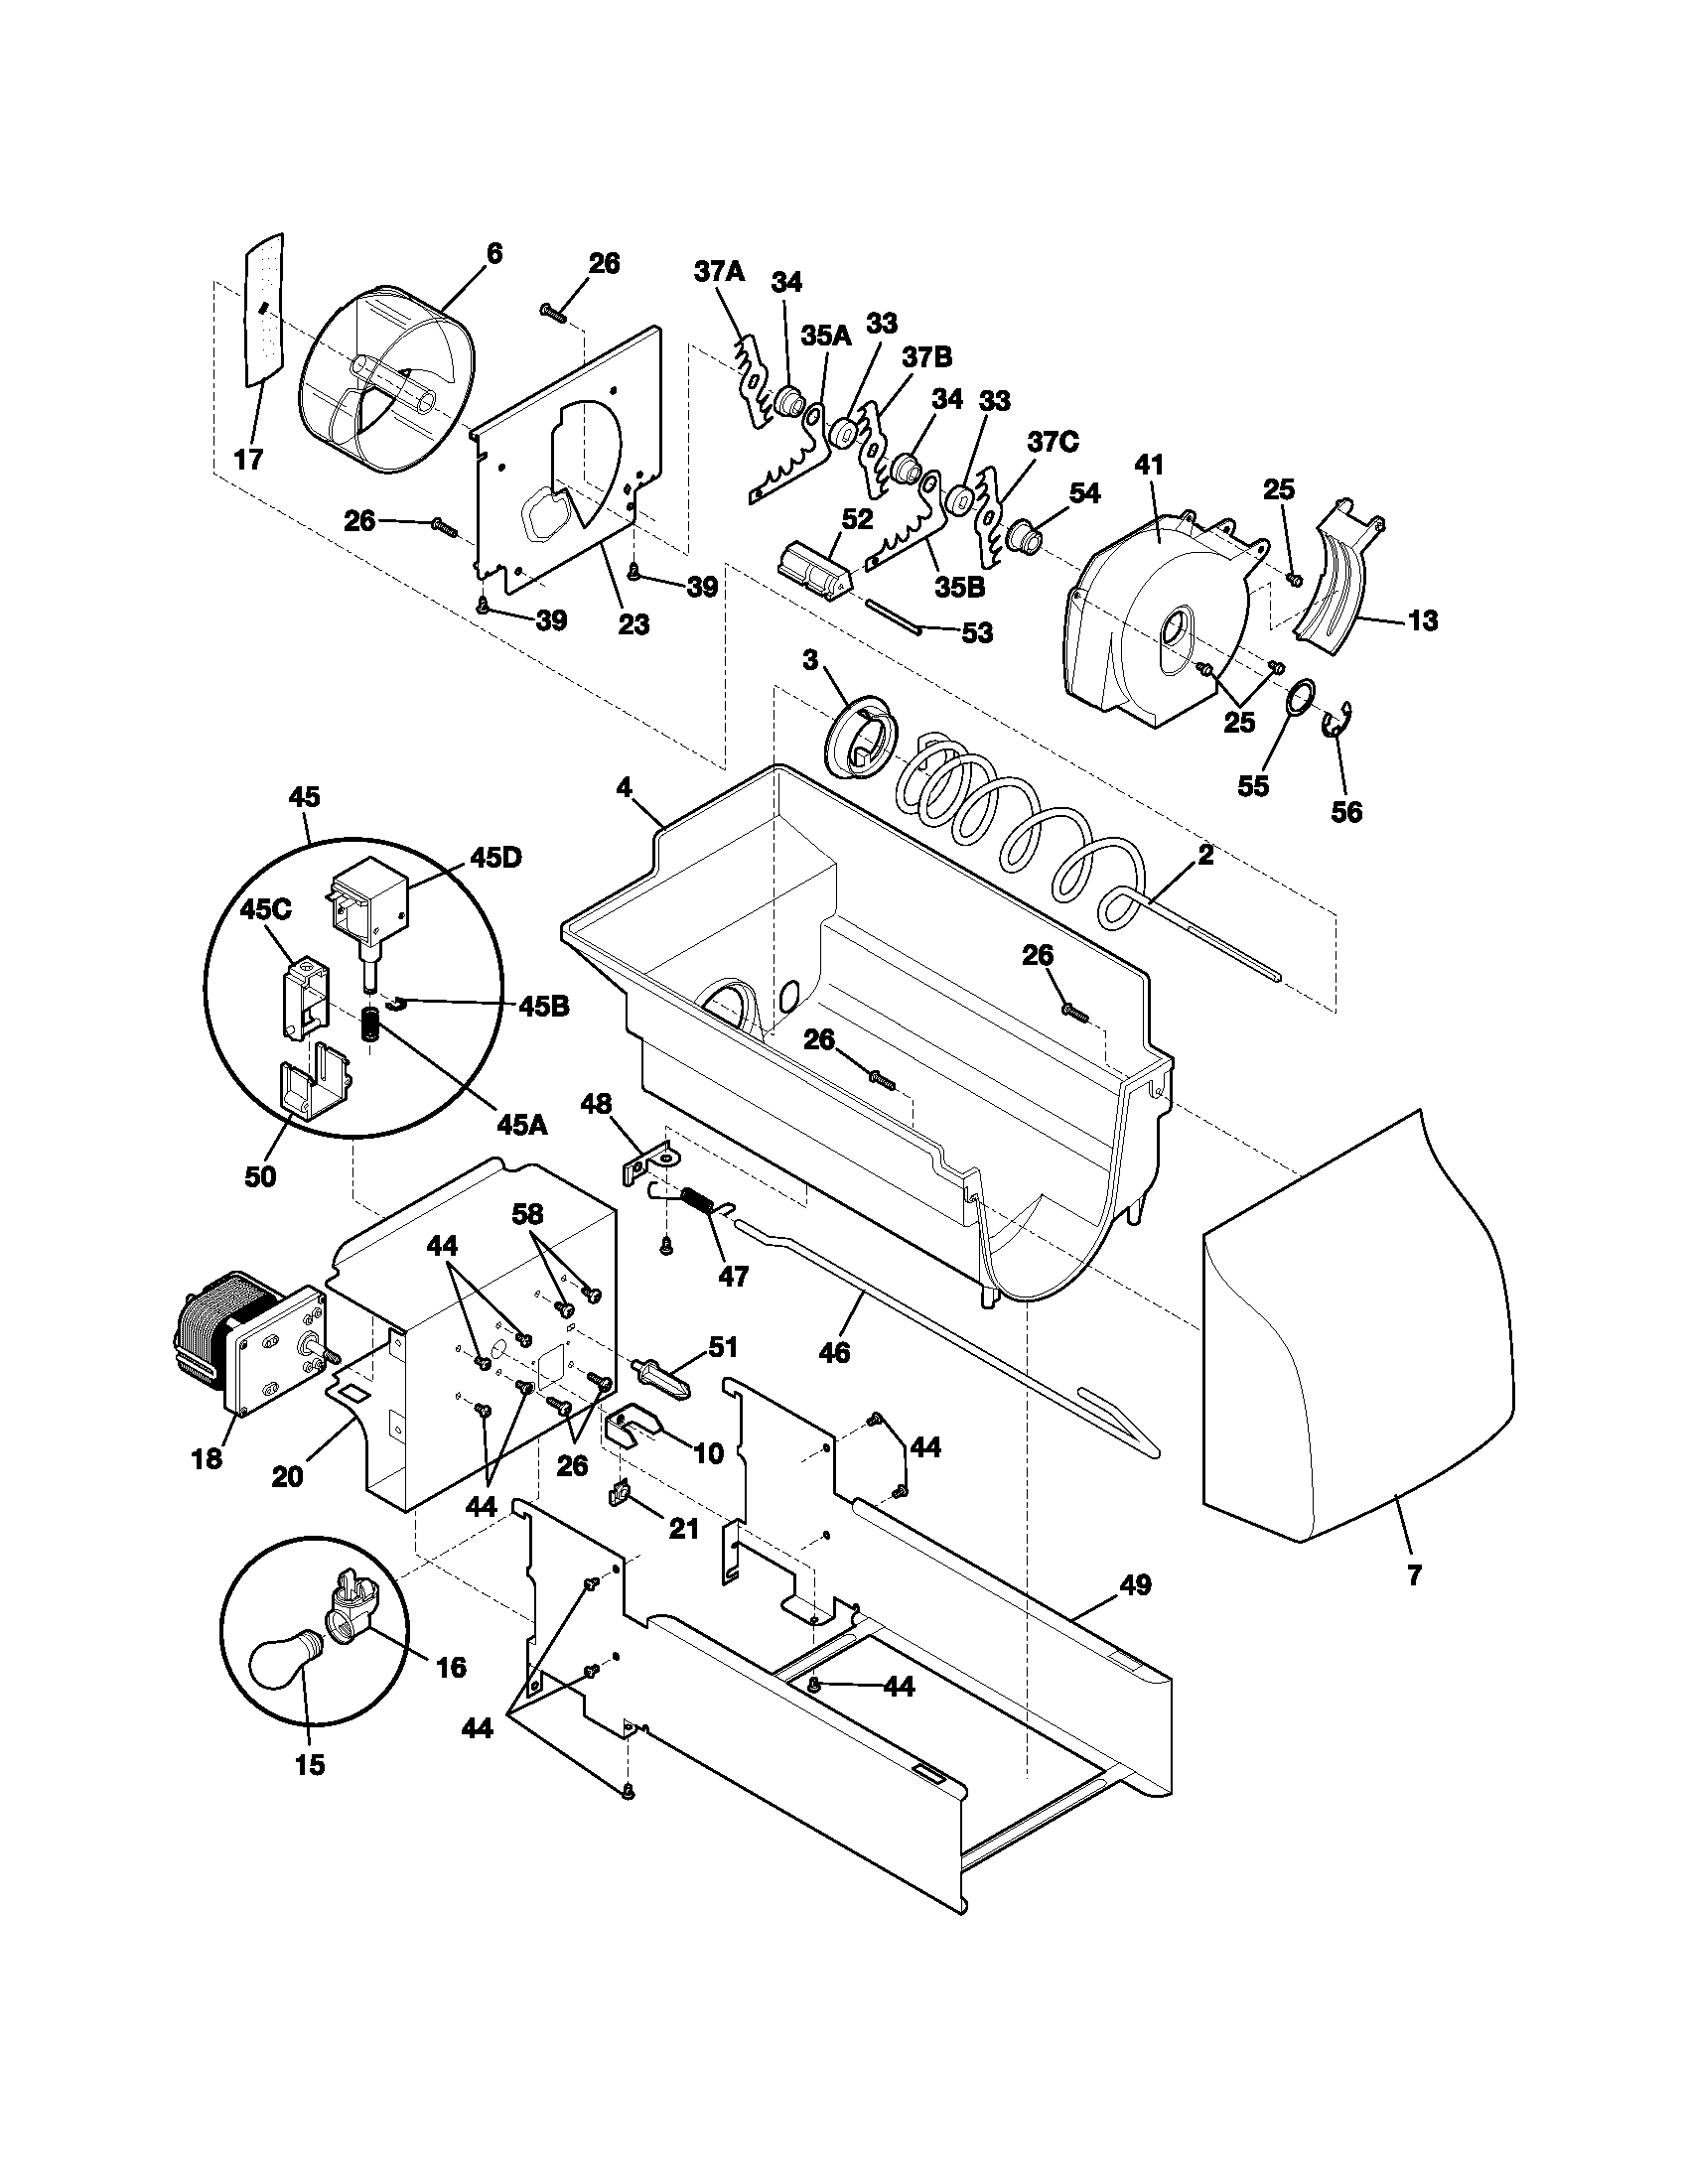 ice maker diagram 1995 ford f150 starter solenoid wiring module free engine image for user